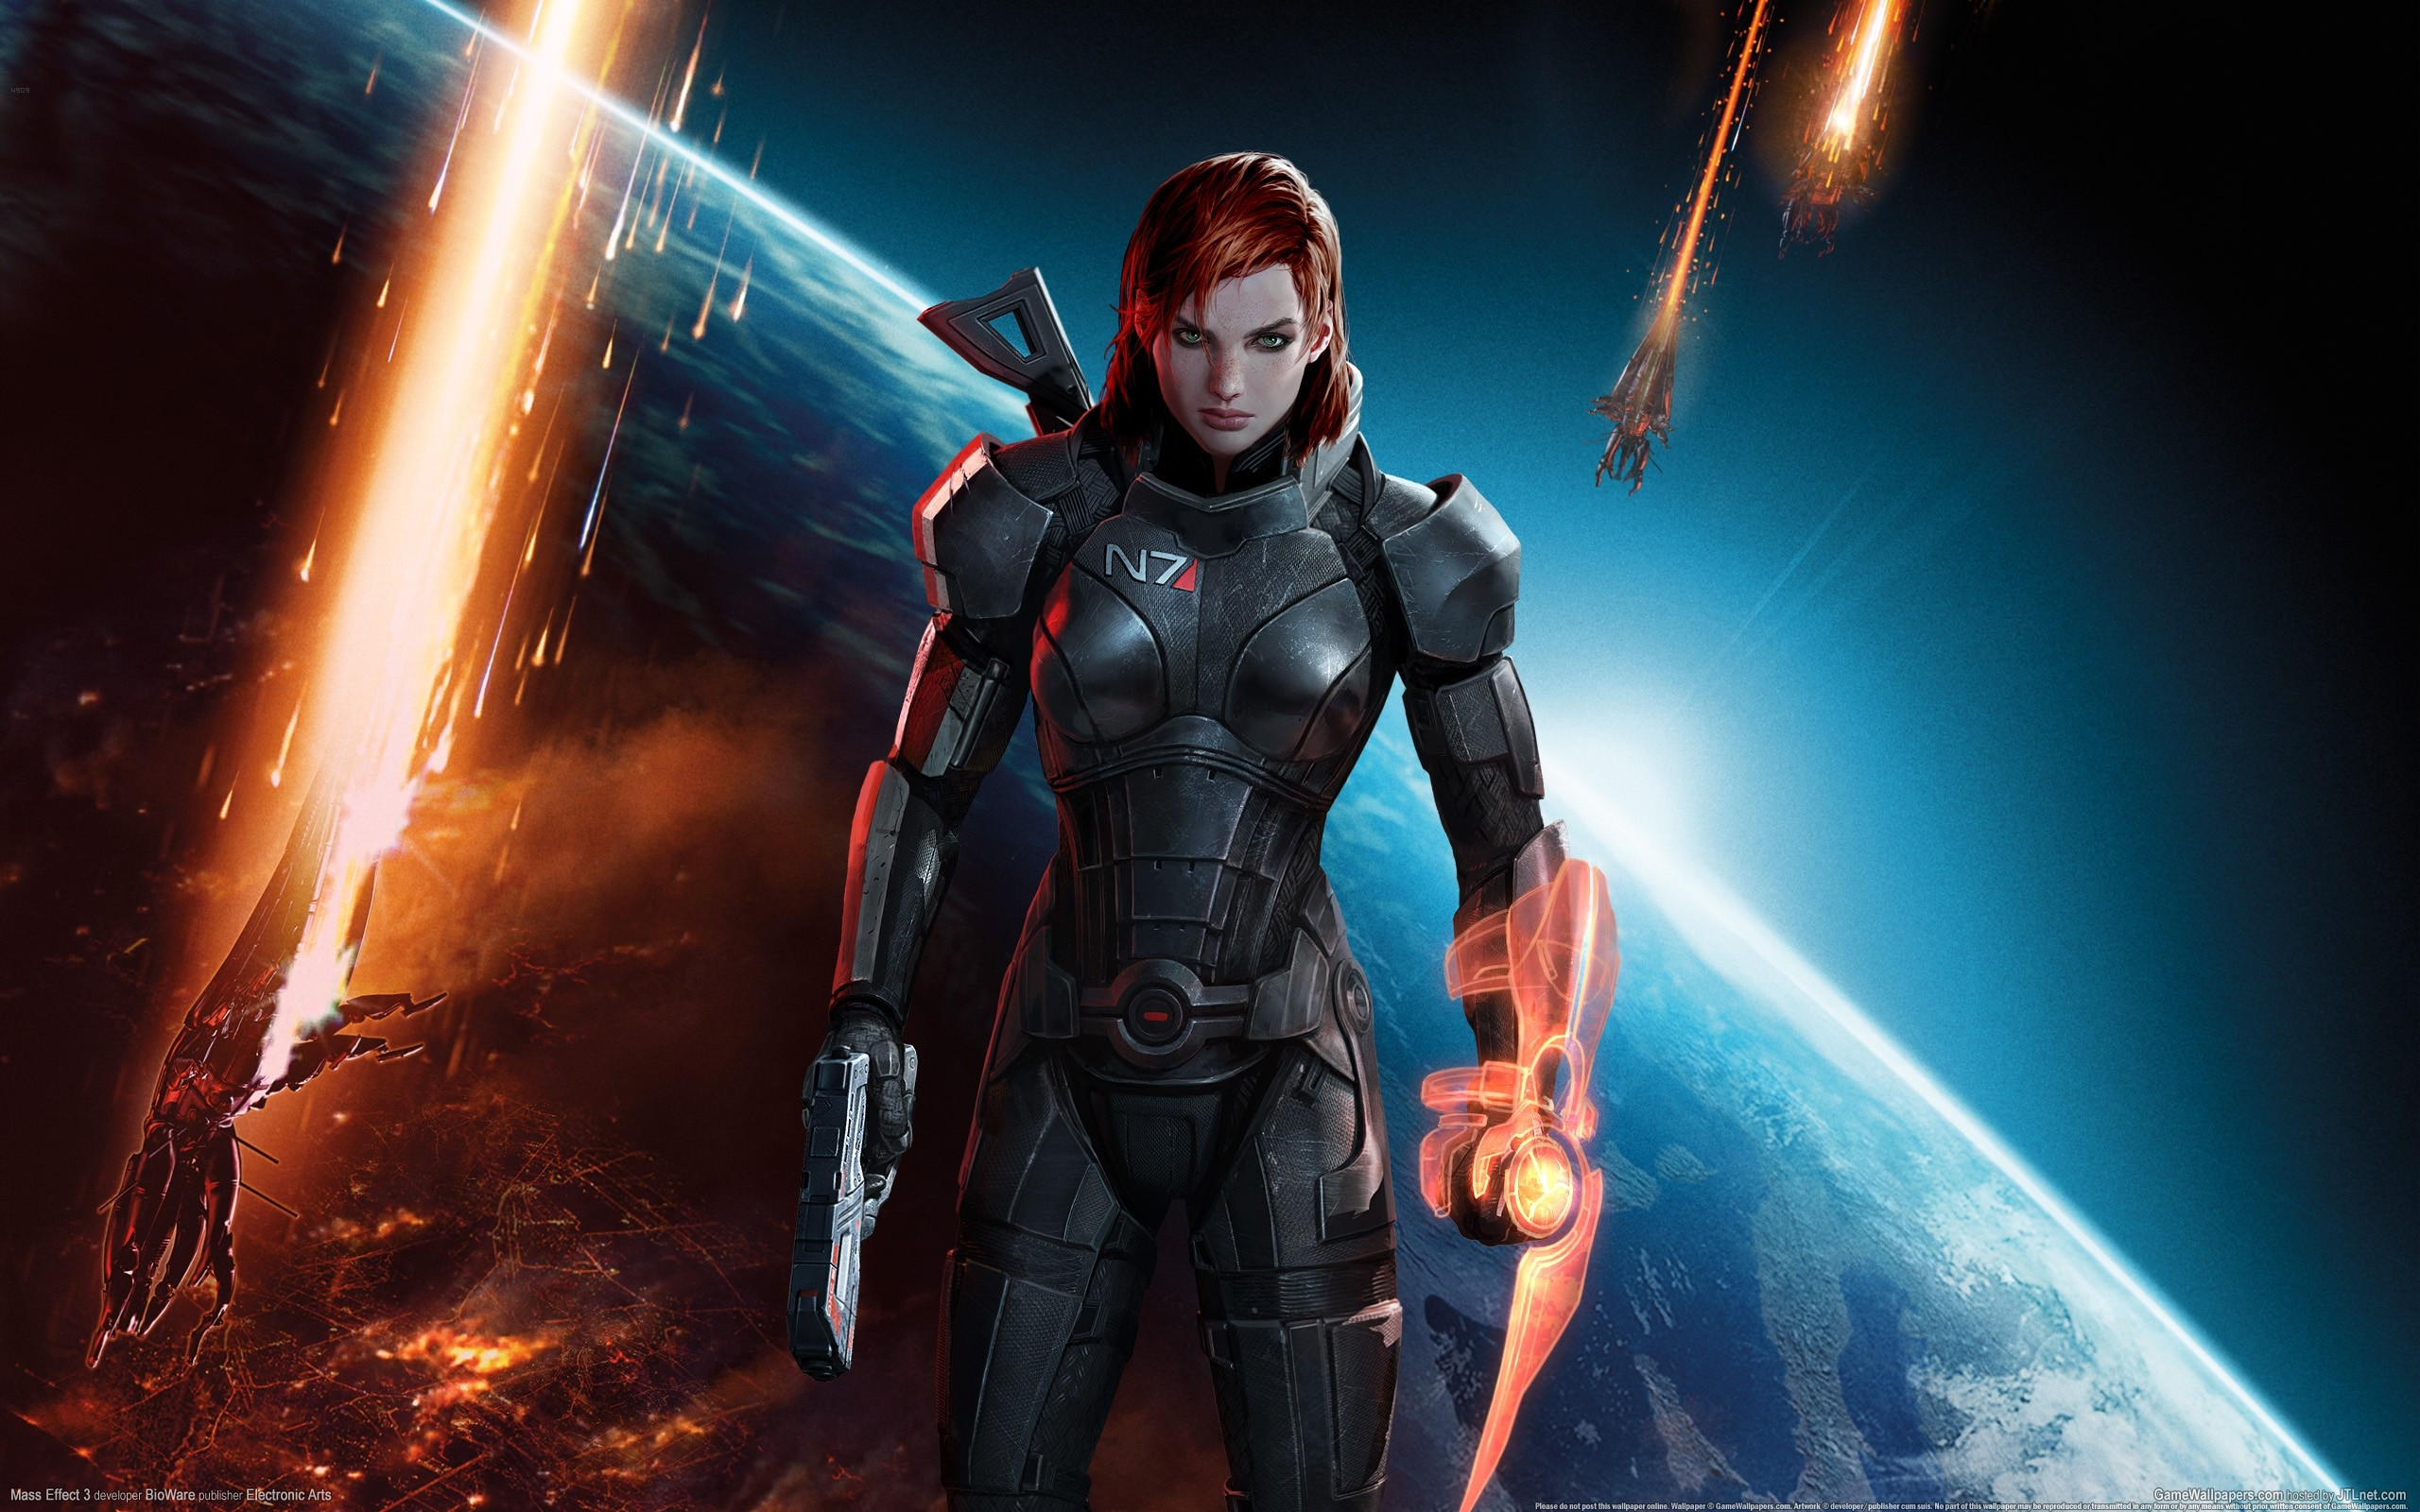 Mass Effect 3 Wallpaper 89 Images